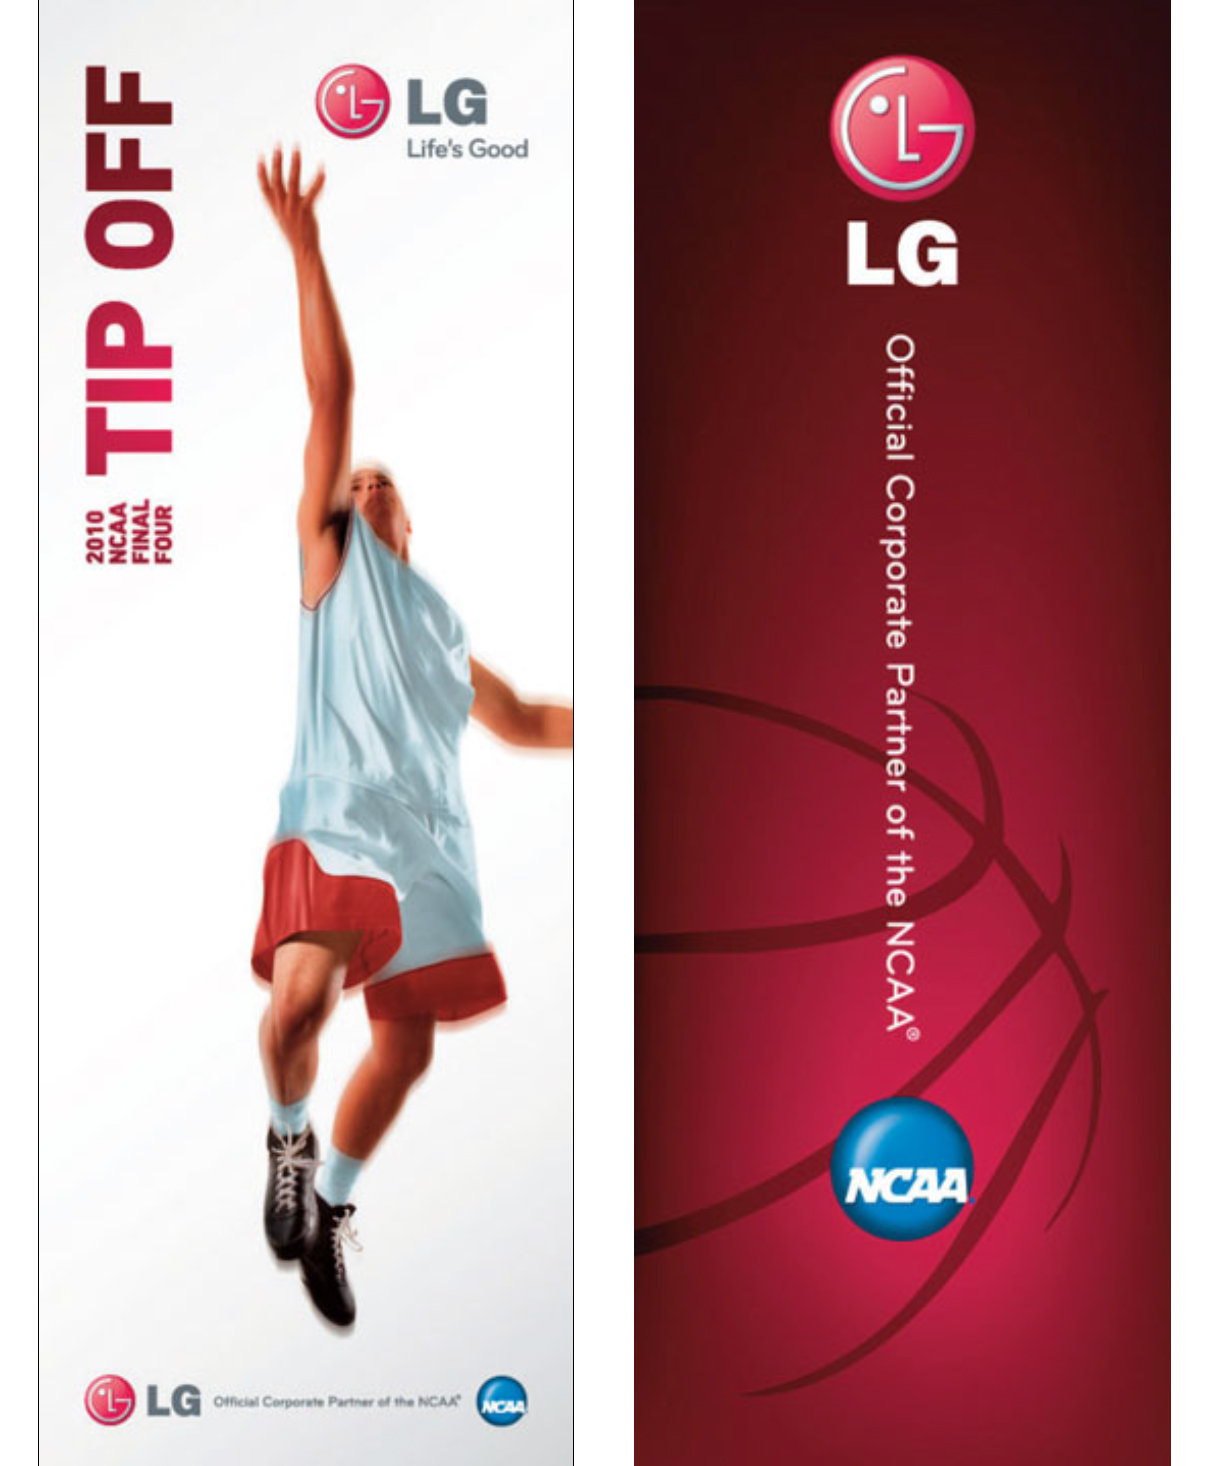 LG_NCAA_POSTERS_ON_DECK_CS.JPG